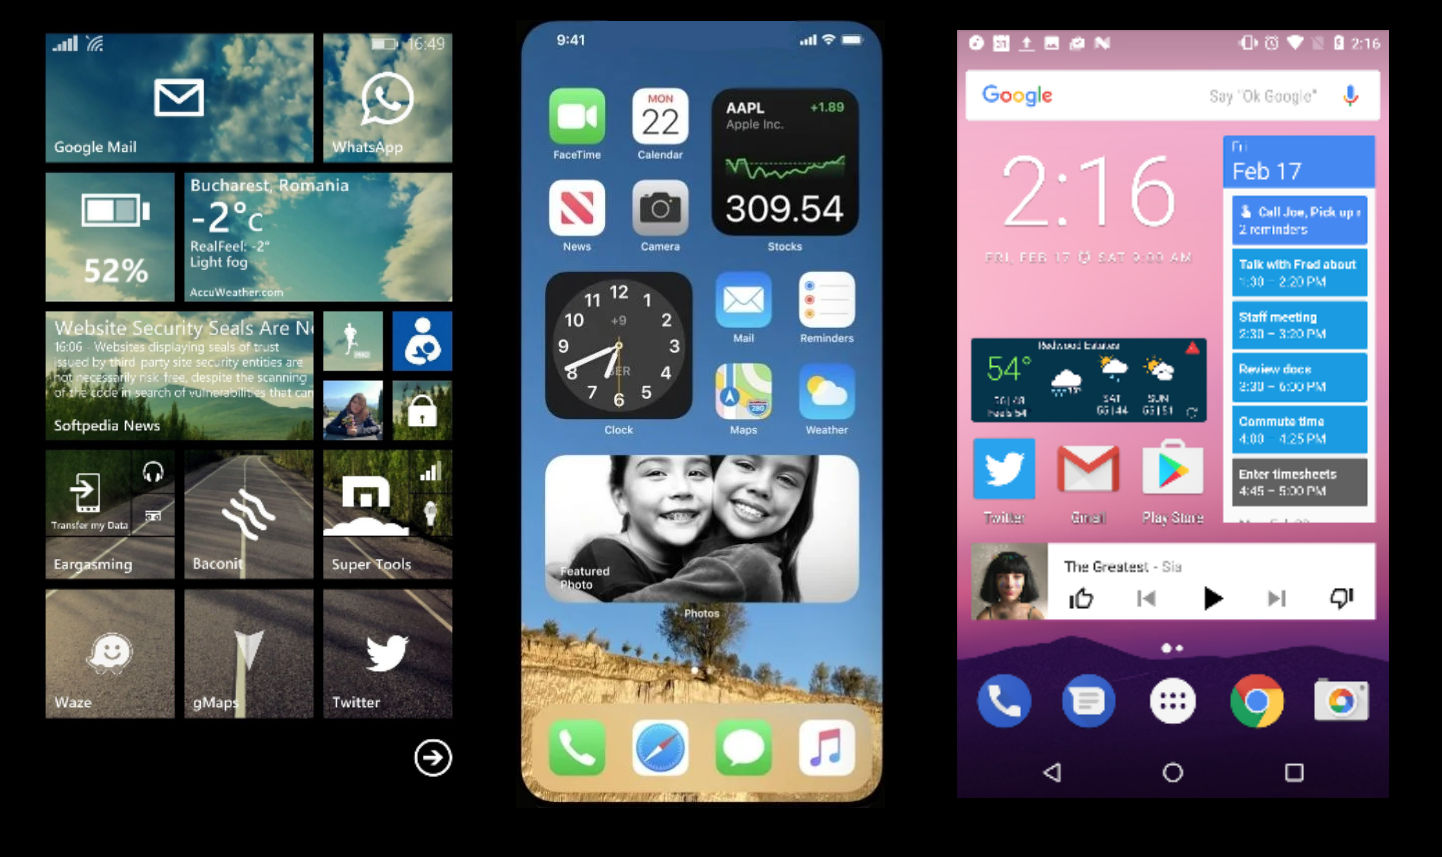 With iOS 14, did Apple copy Windows Phone or Android widgets? - MSPoweruser - MSPoweruser